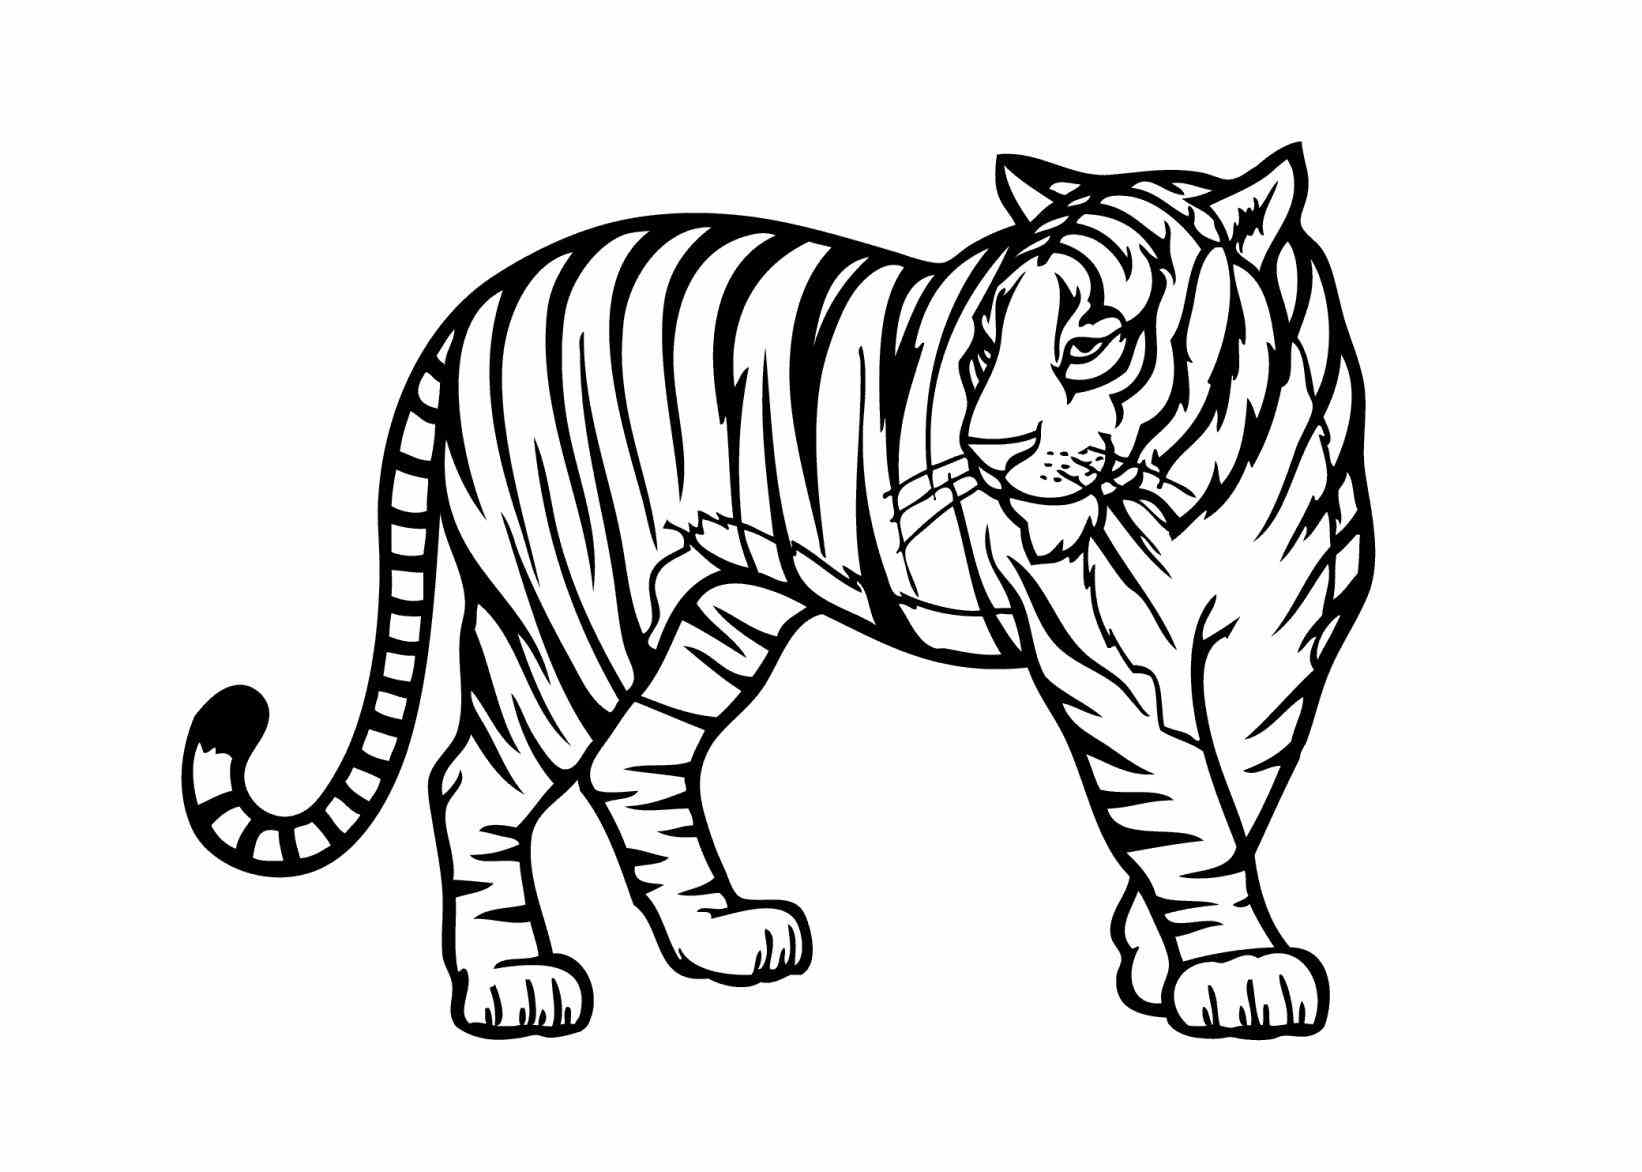 zoo animal coloring wild animal coloring pages best coloring pages for kids zoo animal coloring